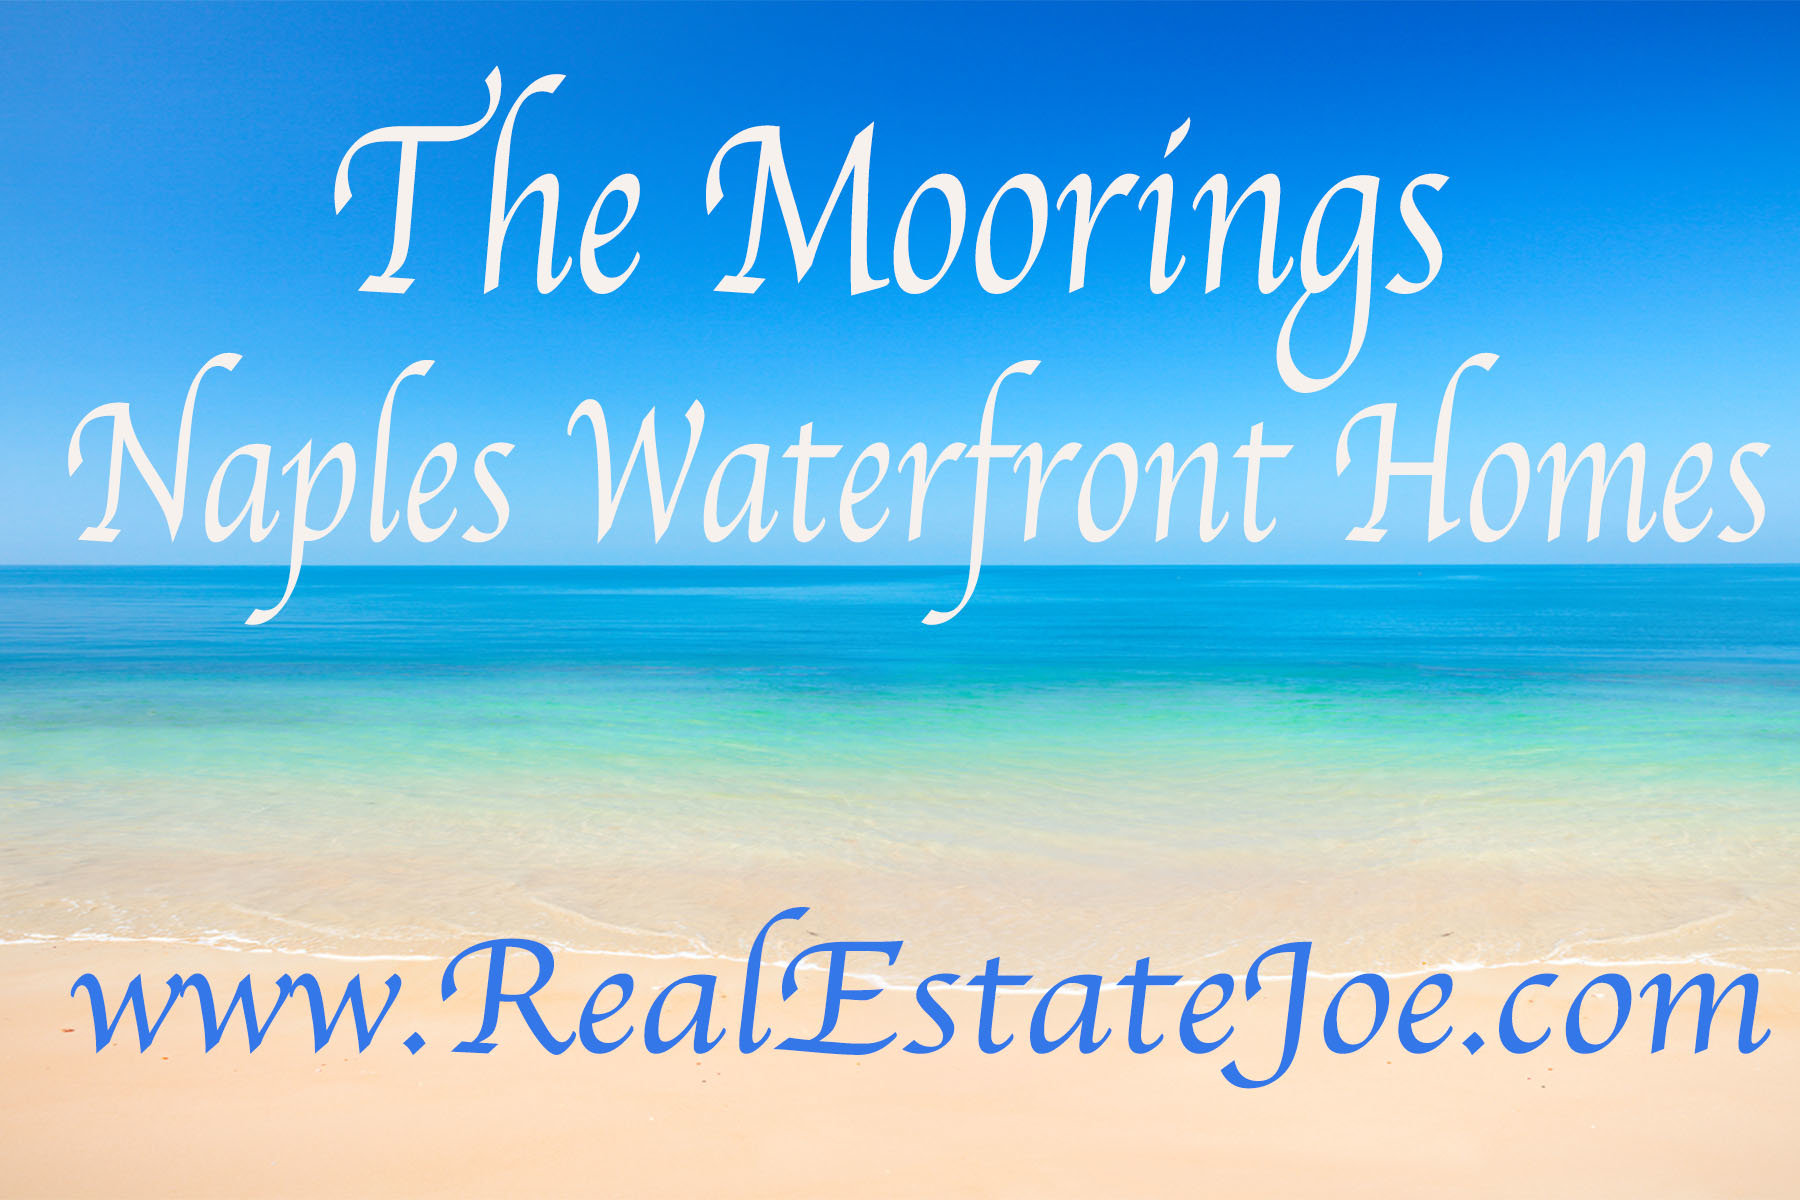 The Moorings Real Estate for sale Naples Florida